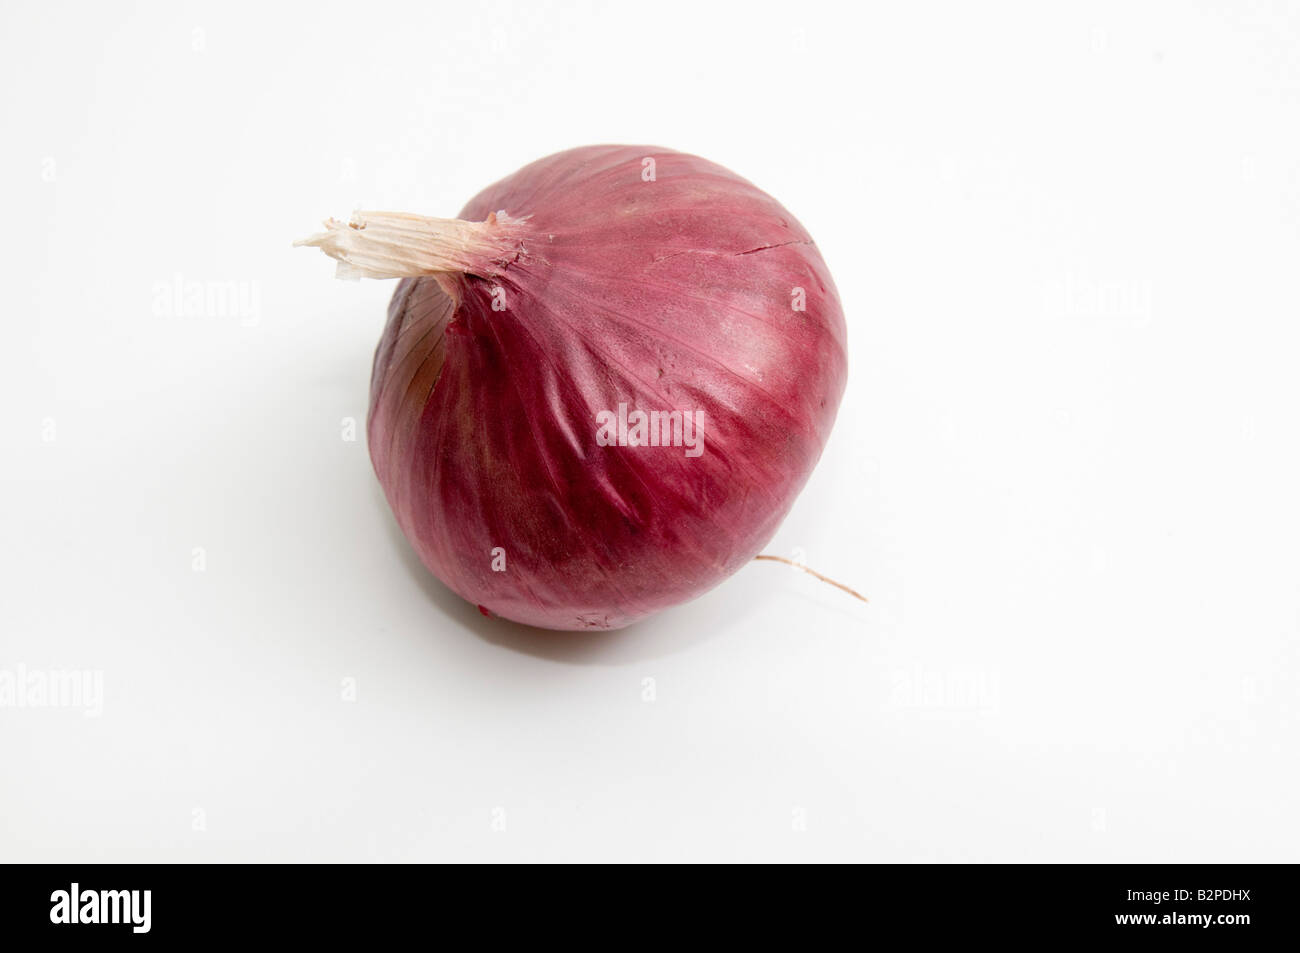 Red Onion on white background - Stock Image